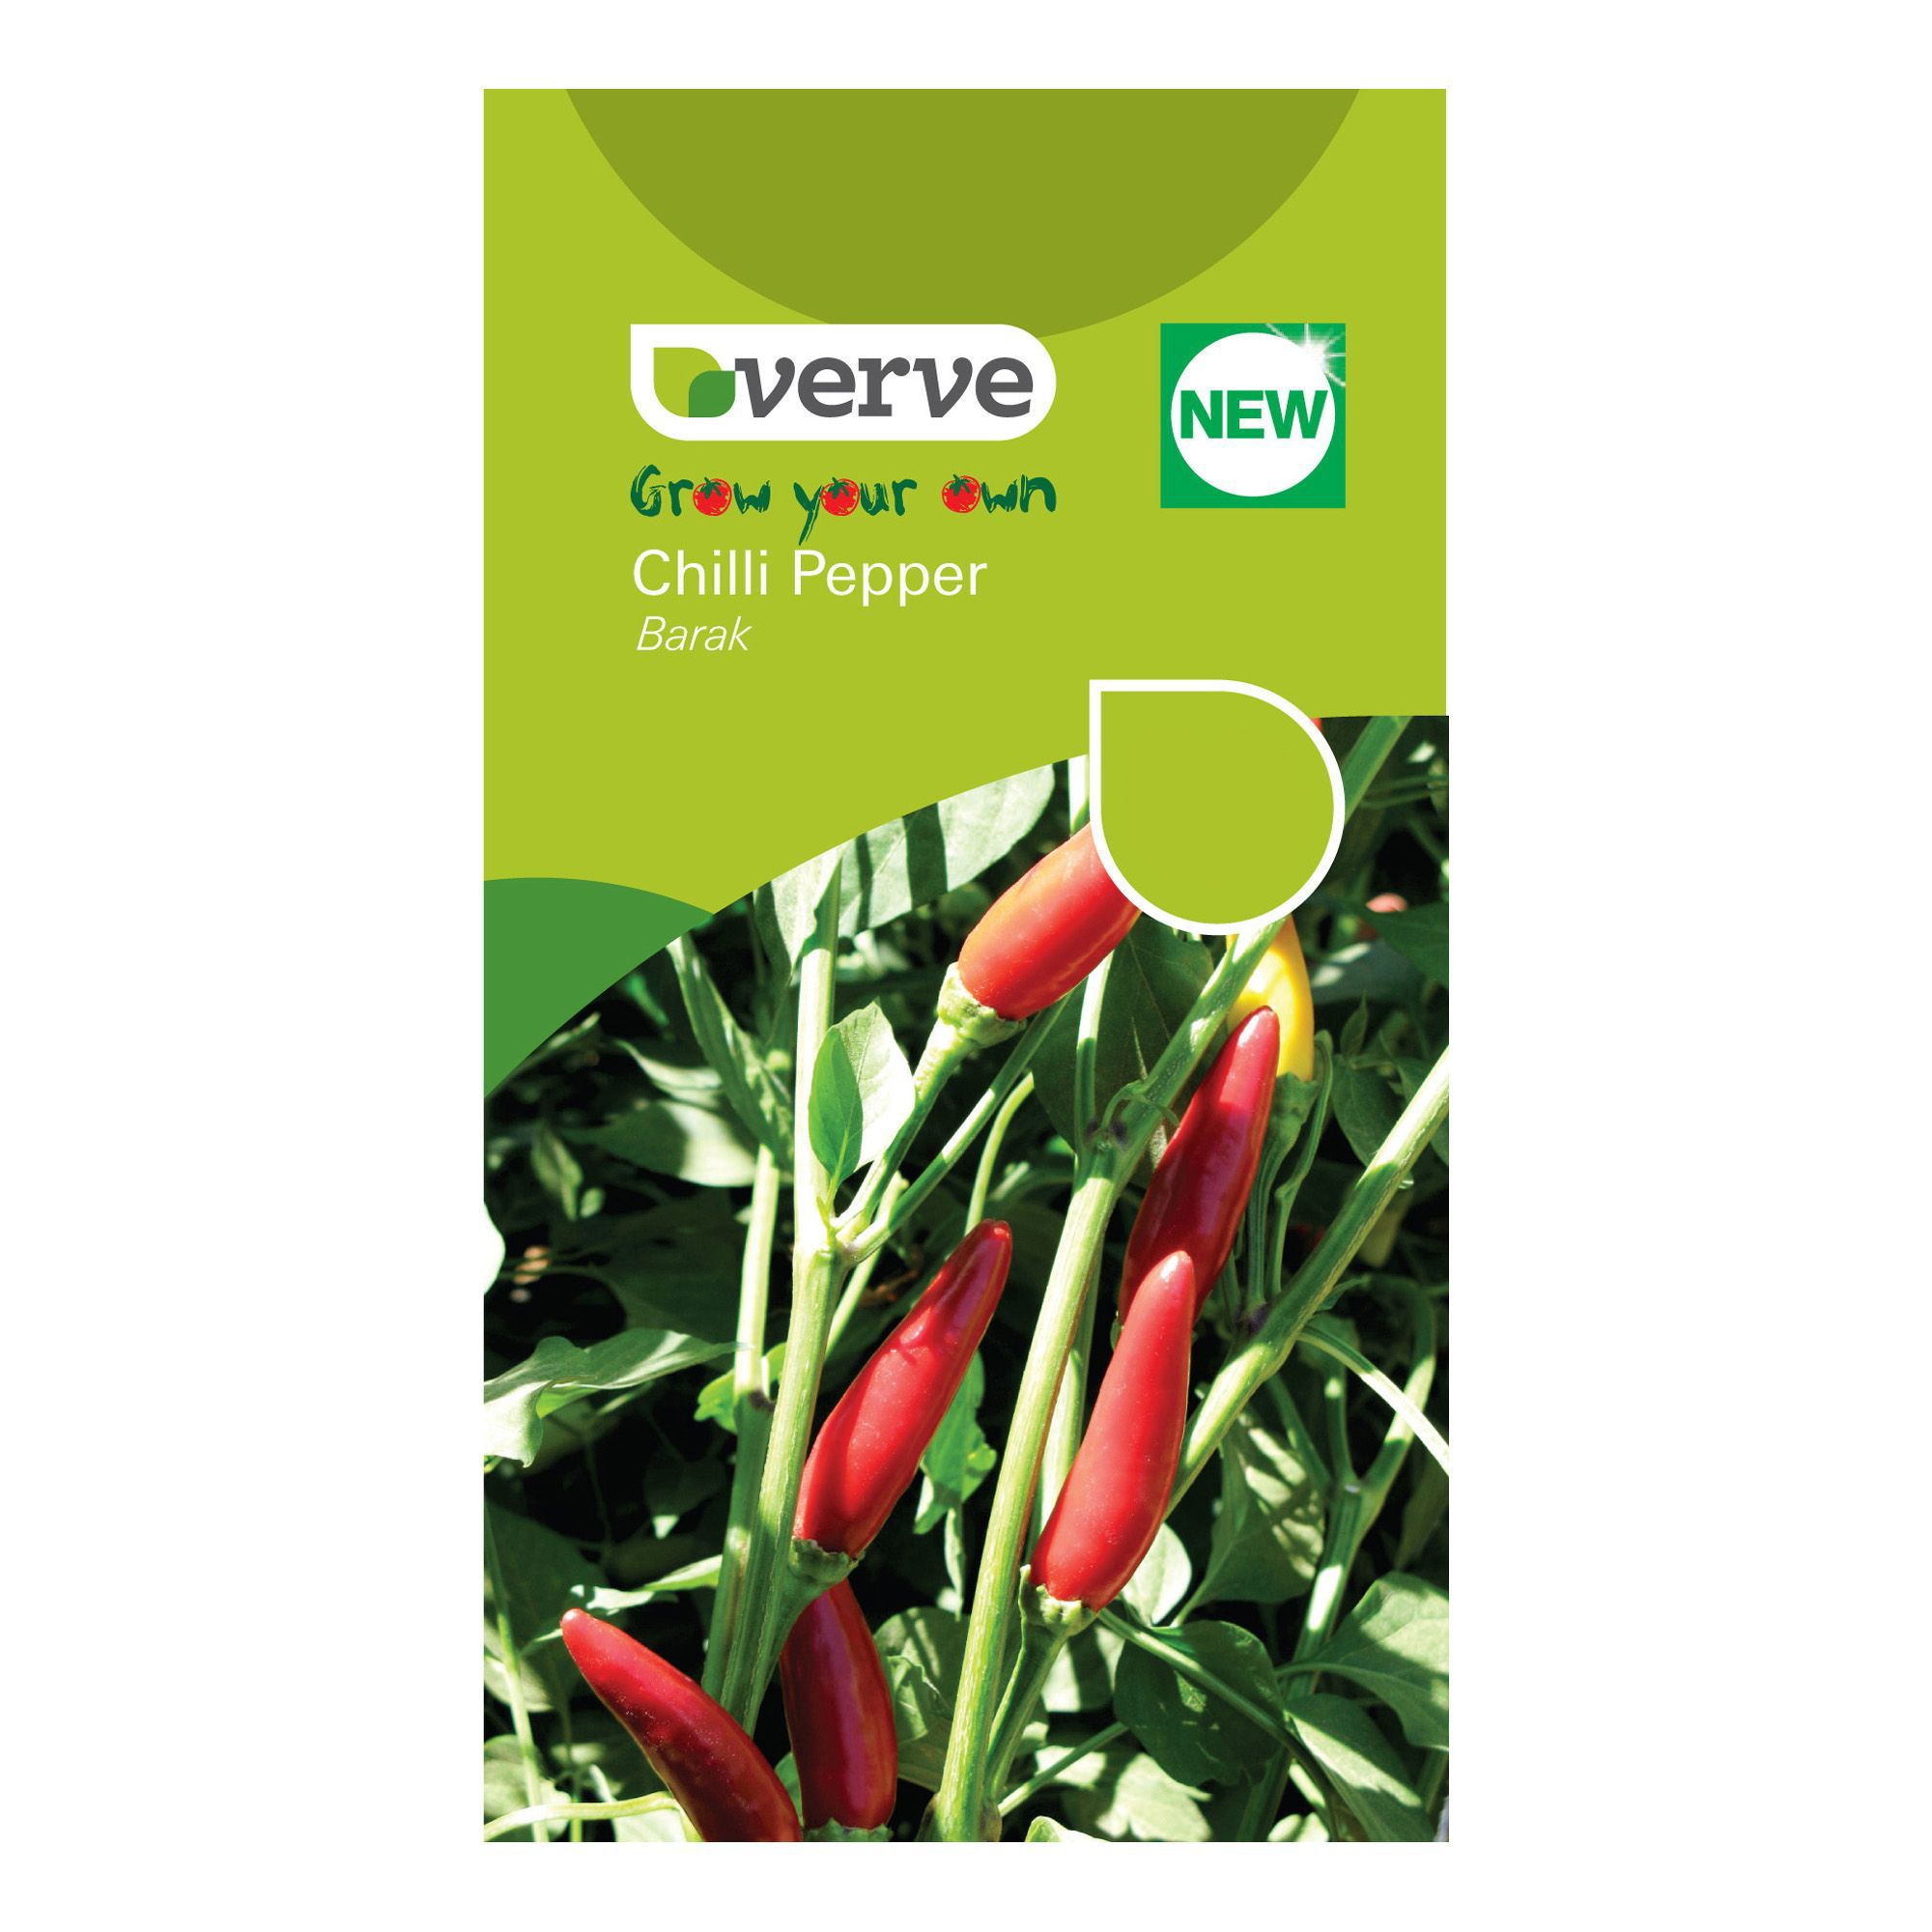 Verve Pepper Chilli Seeds, Barak Mix | Departments | DIY at B&Q